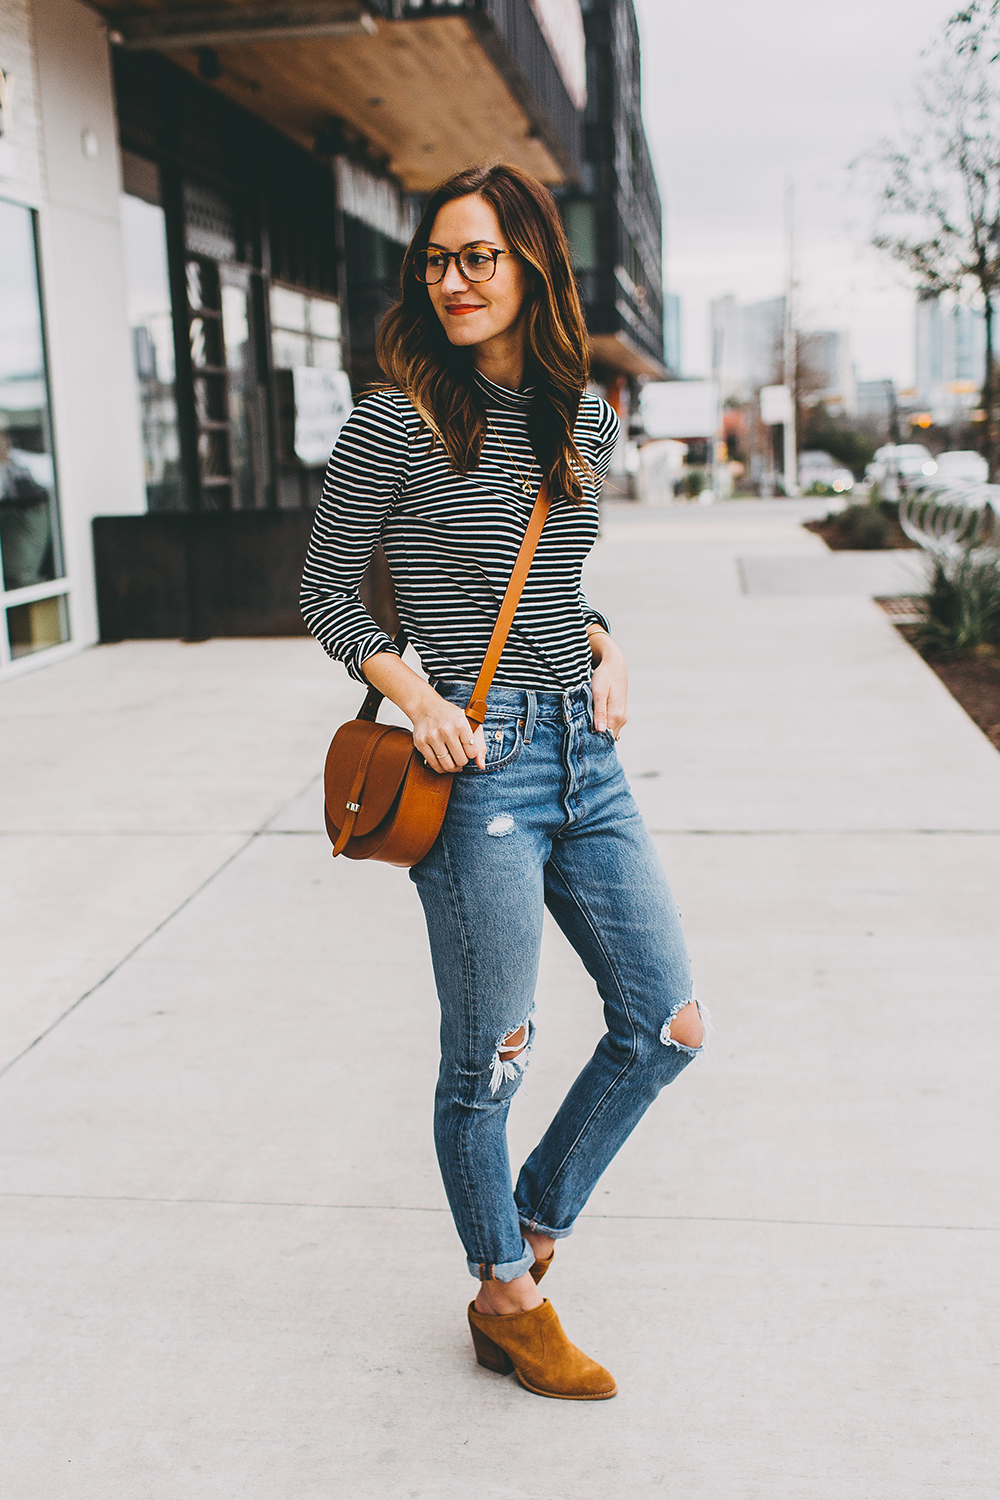 livvyland-blog-olivia-watson-austin-texas-fashion-blogger-j-crew-striped-turtleneck-outfit-idea-inspiration-8